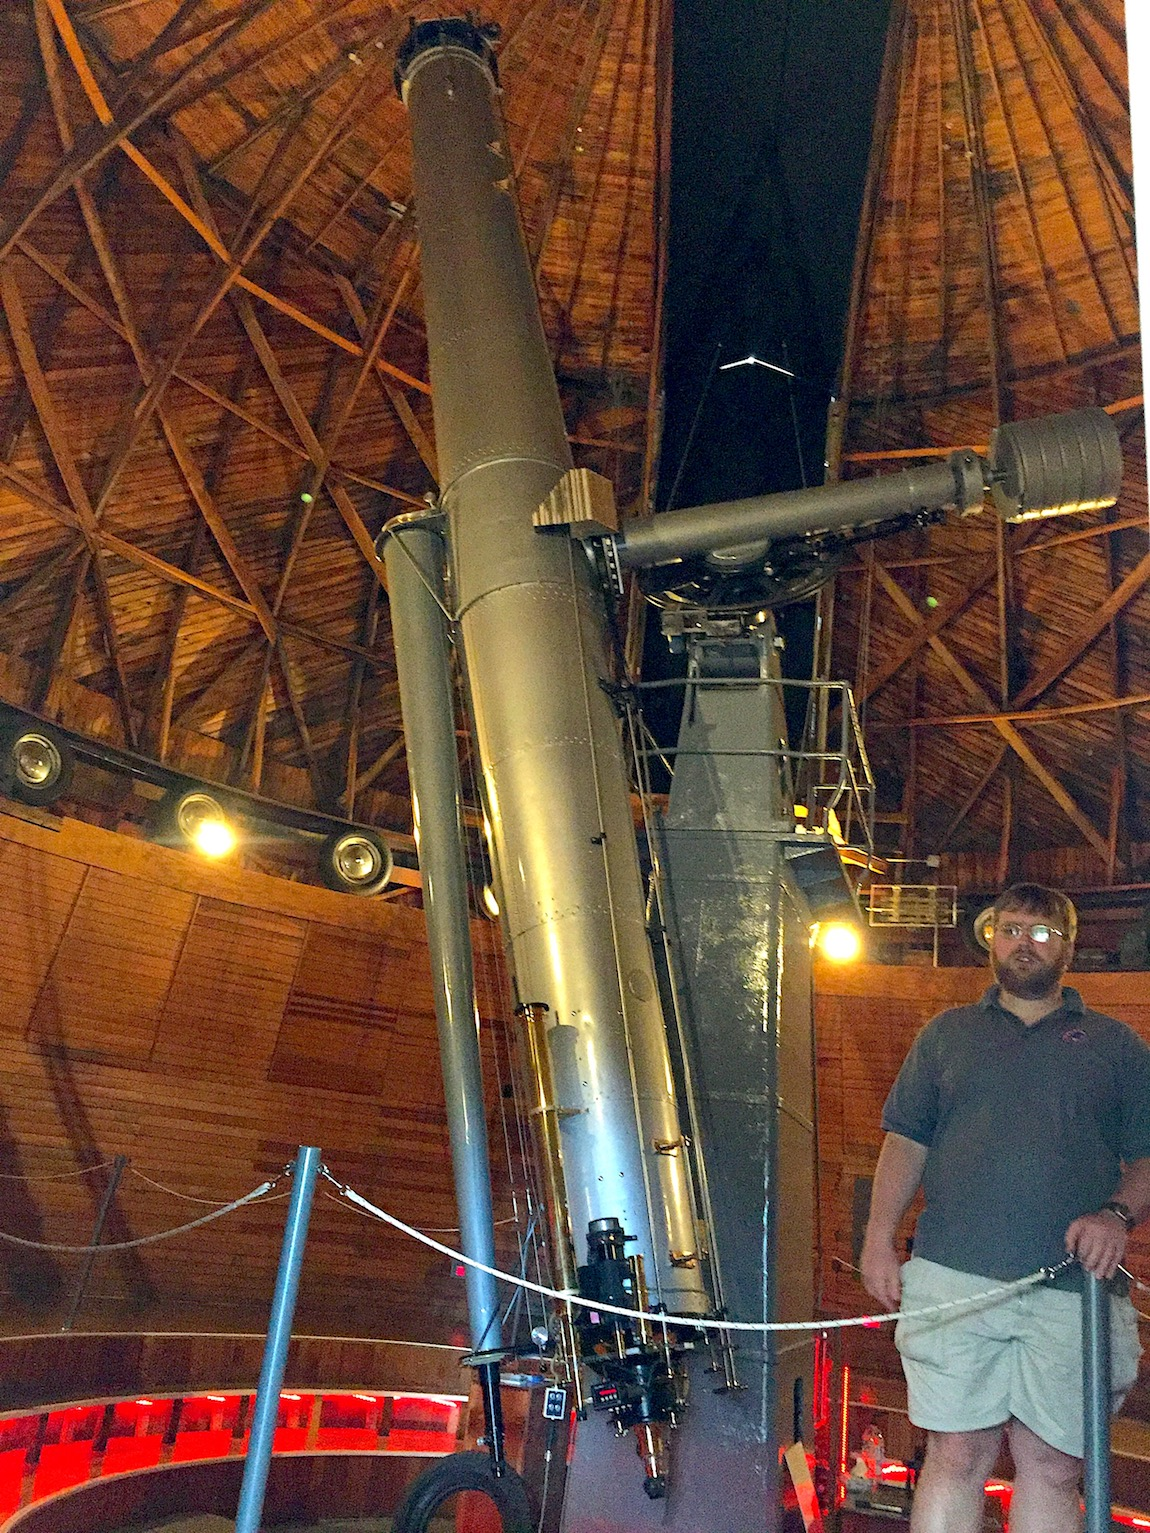 The Alvan Clark telescope at the Lowell Observatory.